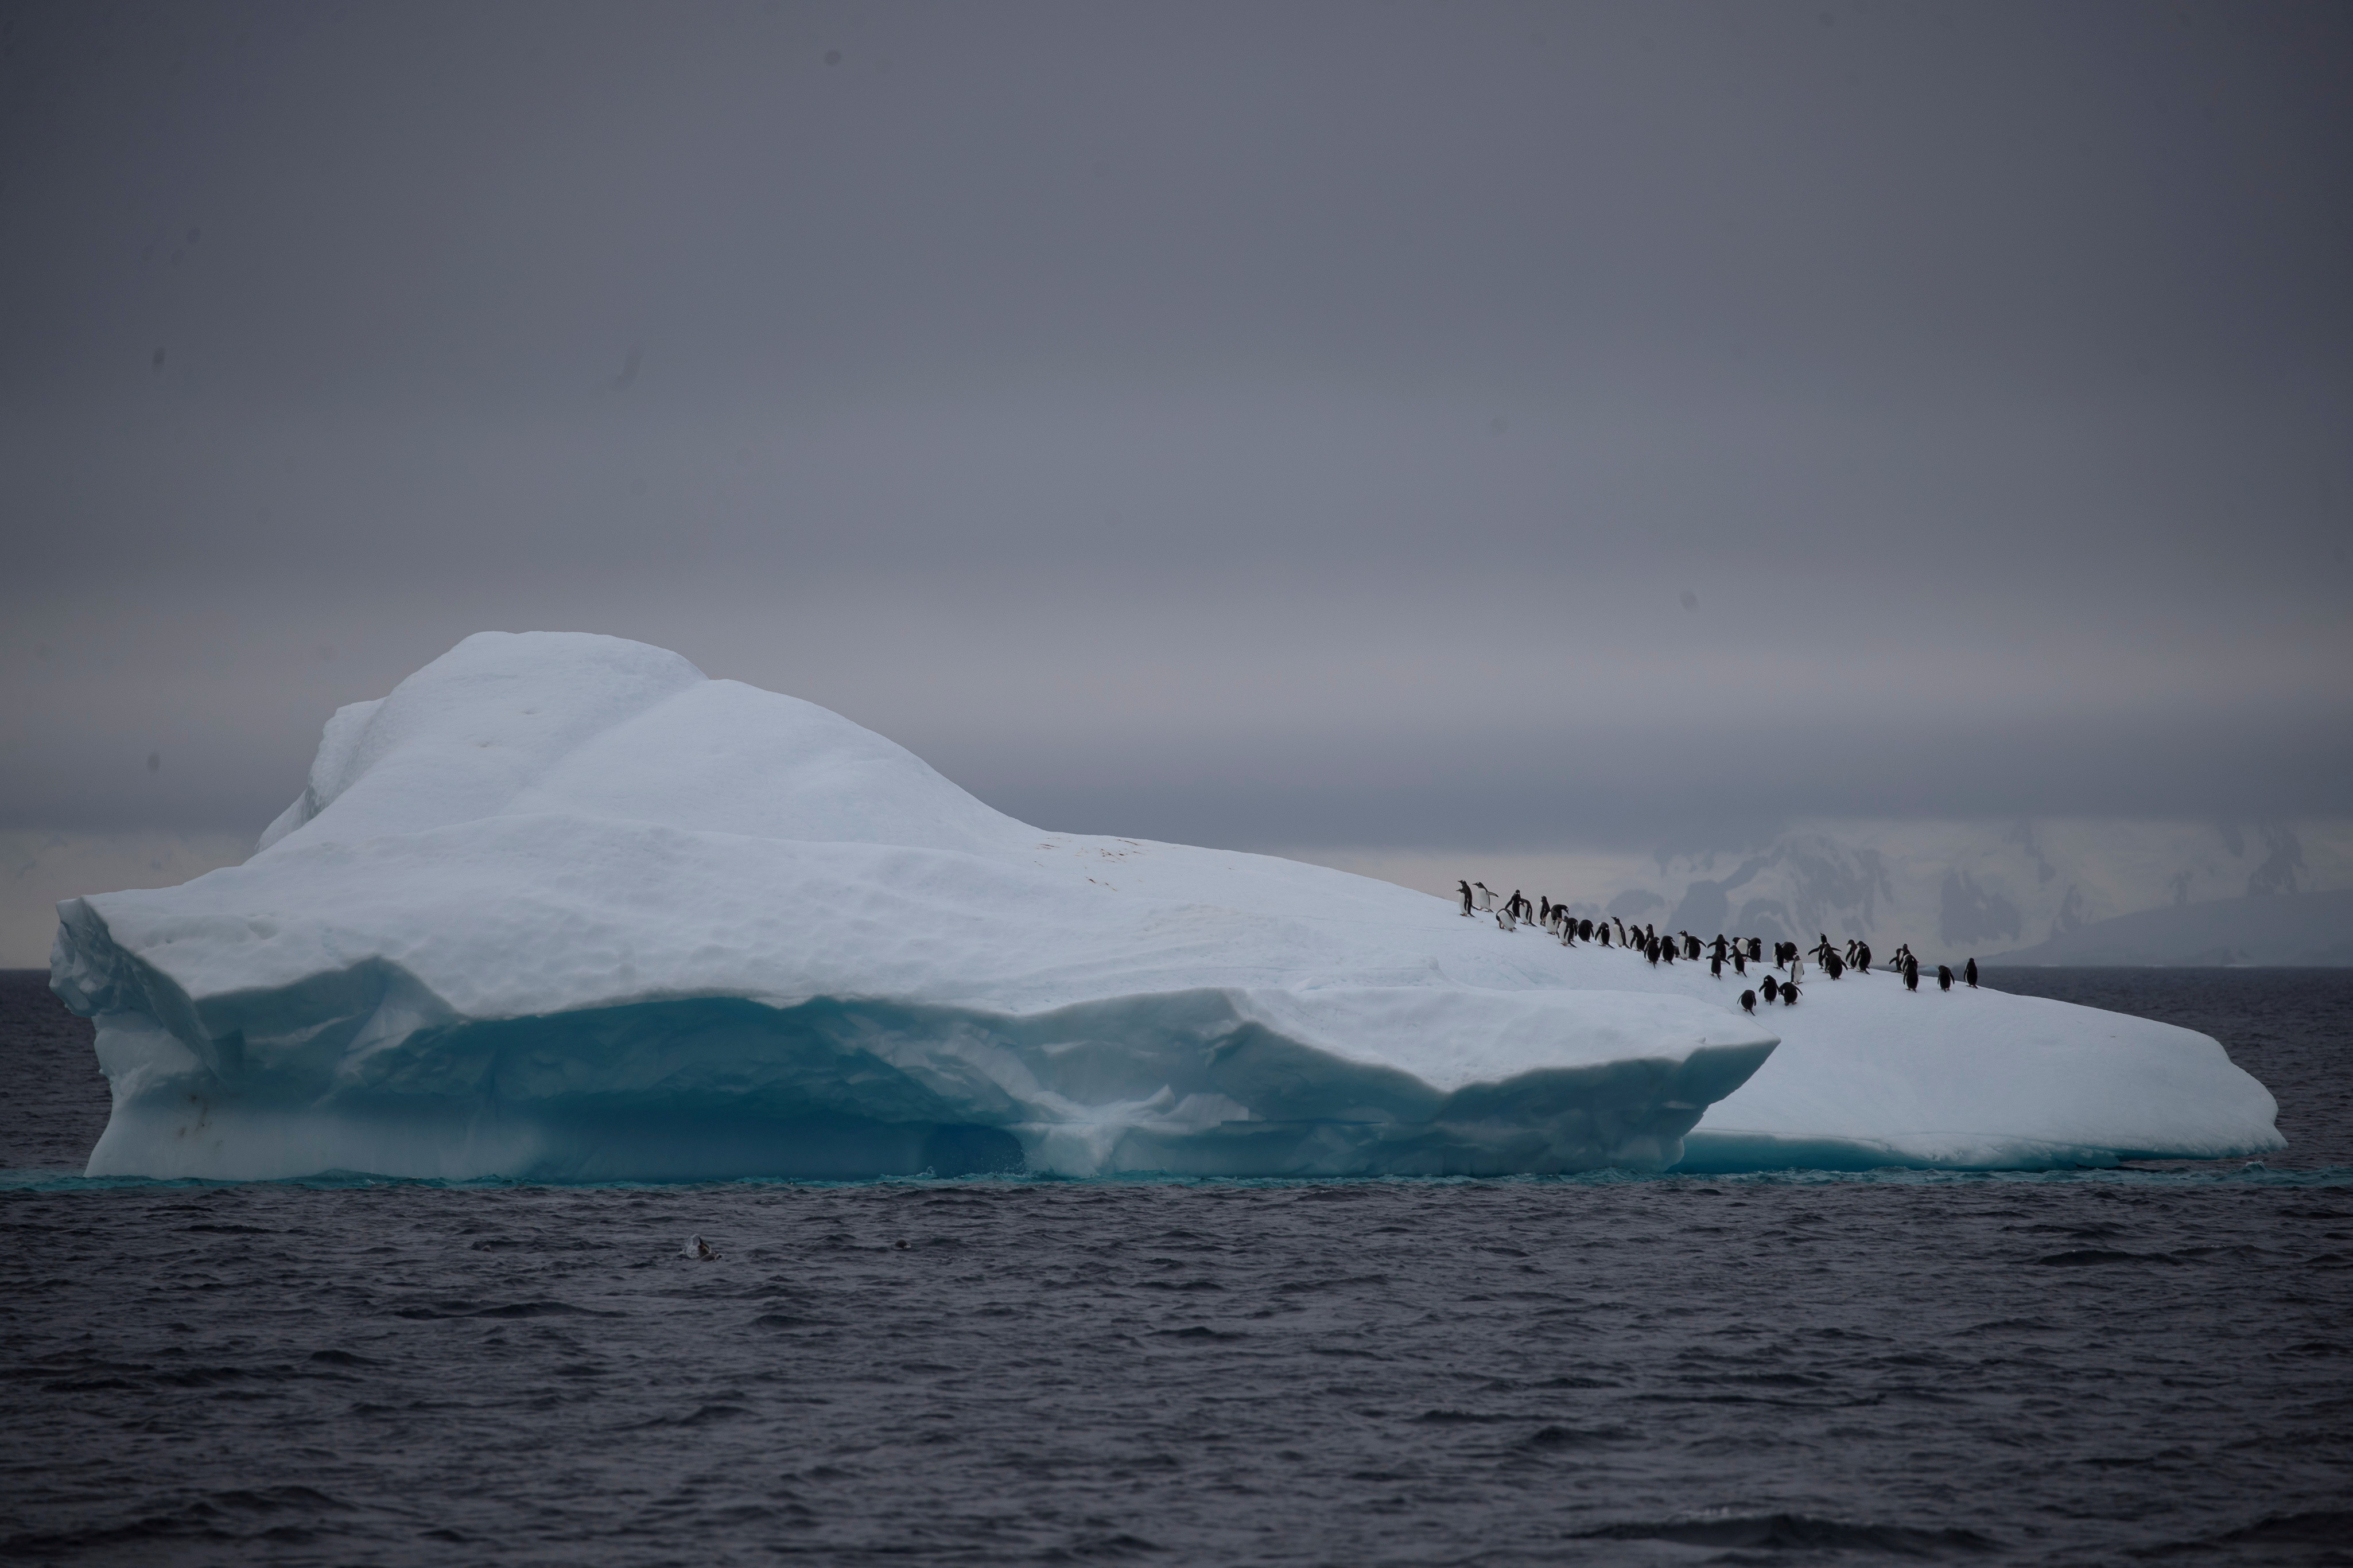 A group of chinstrap penguins walk on top of an iceberg.